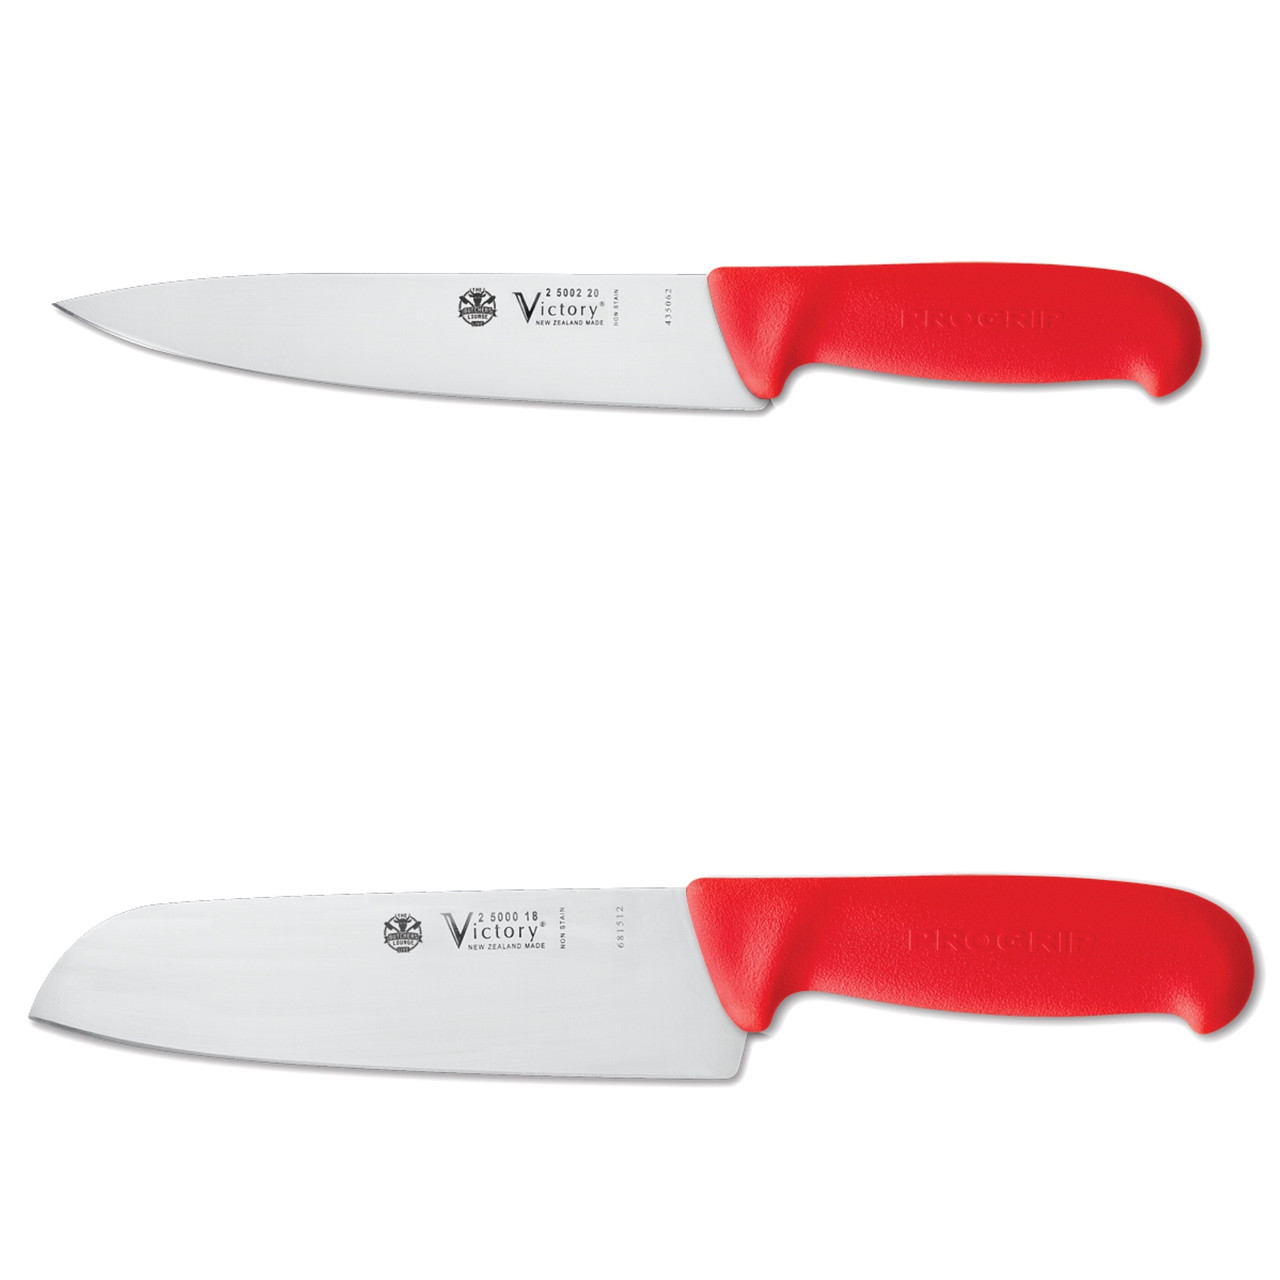 """Set of 2 Victory Knives - """"The Butcher's Lounge Live"""" -  Limited Edition - #3 - """"Chef Series"""""""